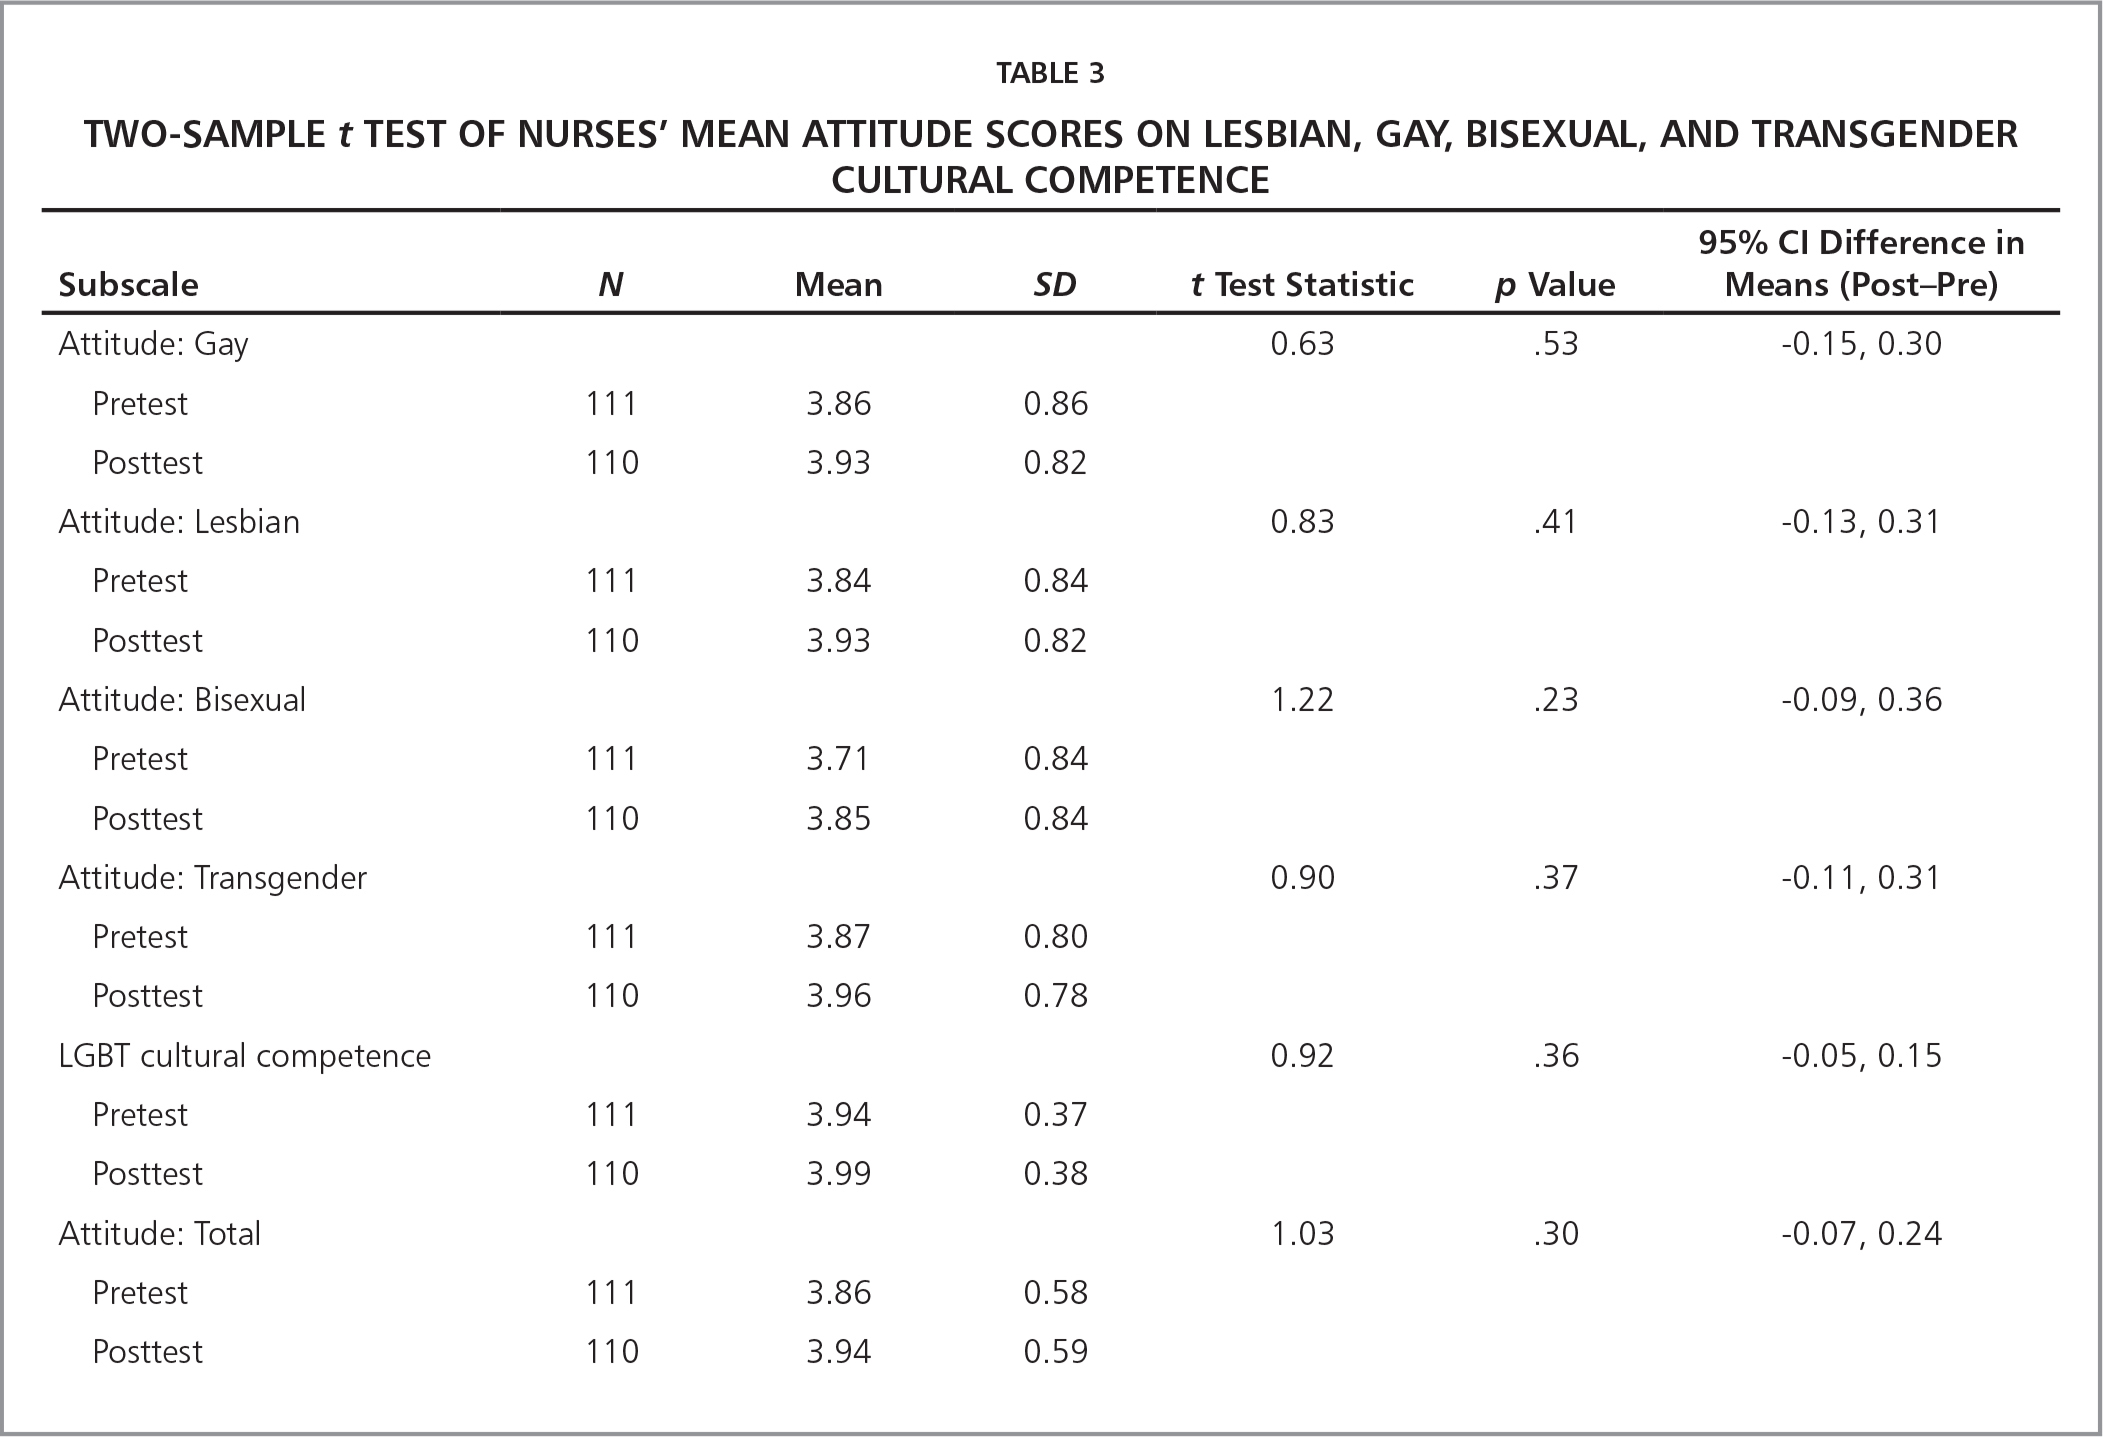 Two-Sample t Test of Nurses' Mean Attitude Scores on Lesbian, Gay, Bisexual, and Transgender Cultural Competence